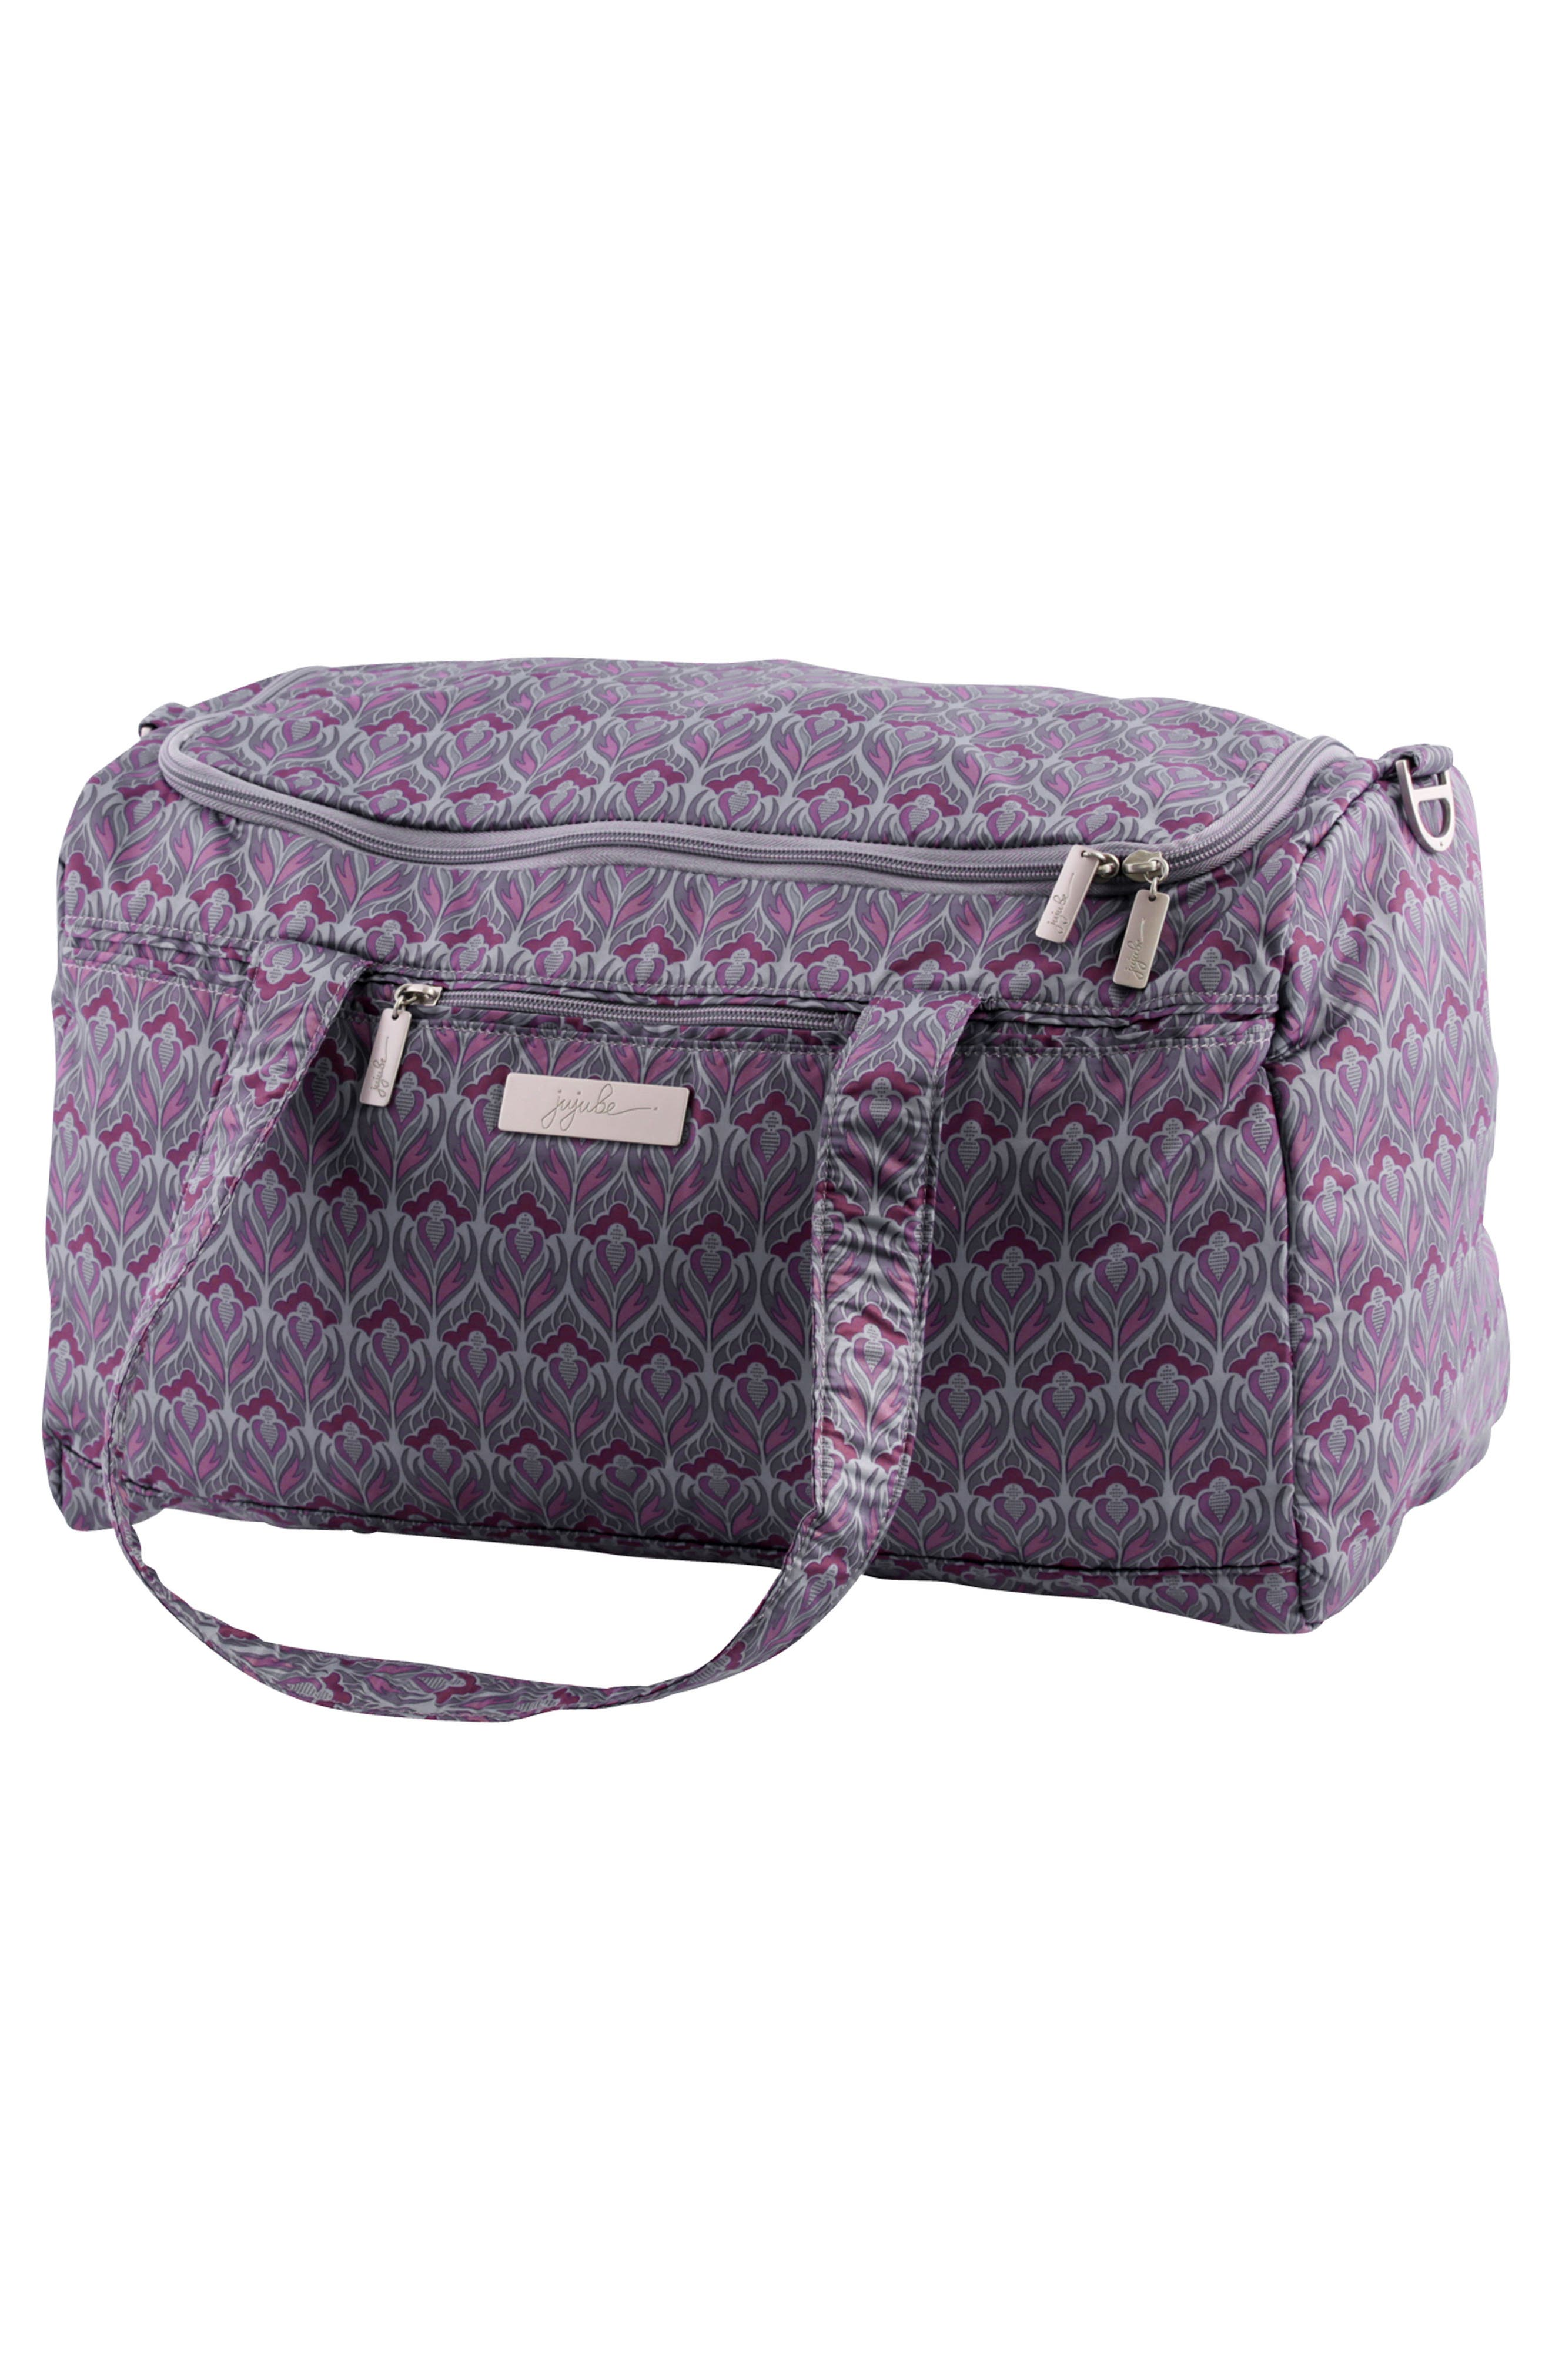 'Starlet' Travel Diaper Bag,                             Alternate thumbnail 14, color,